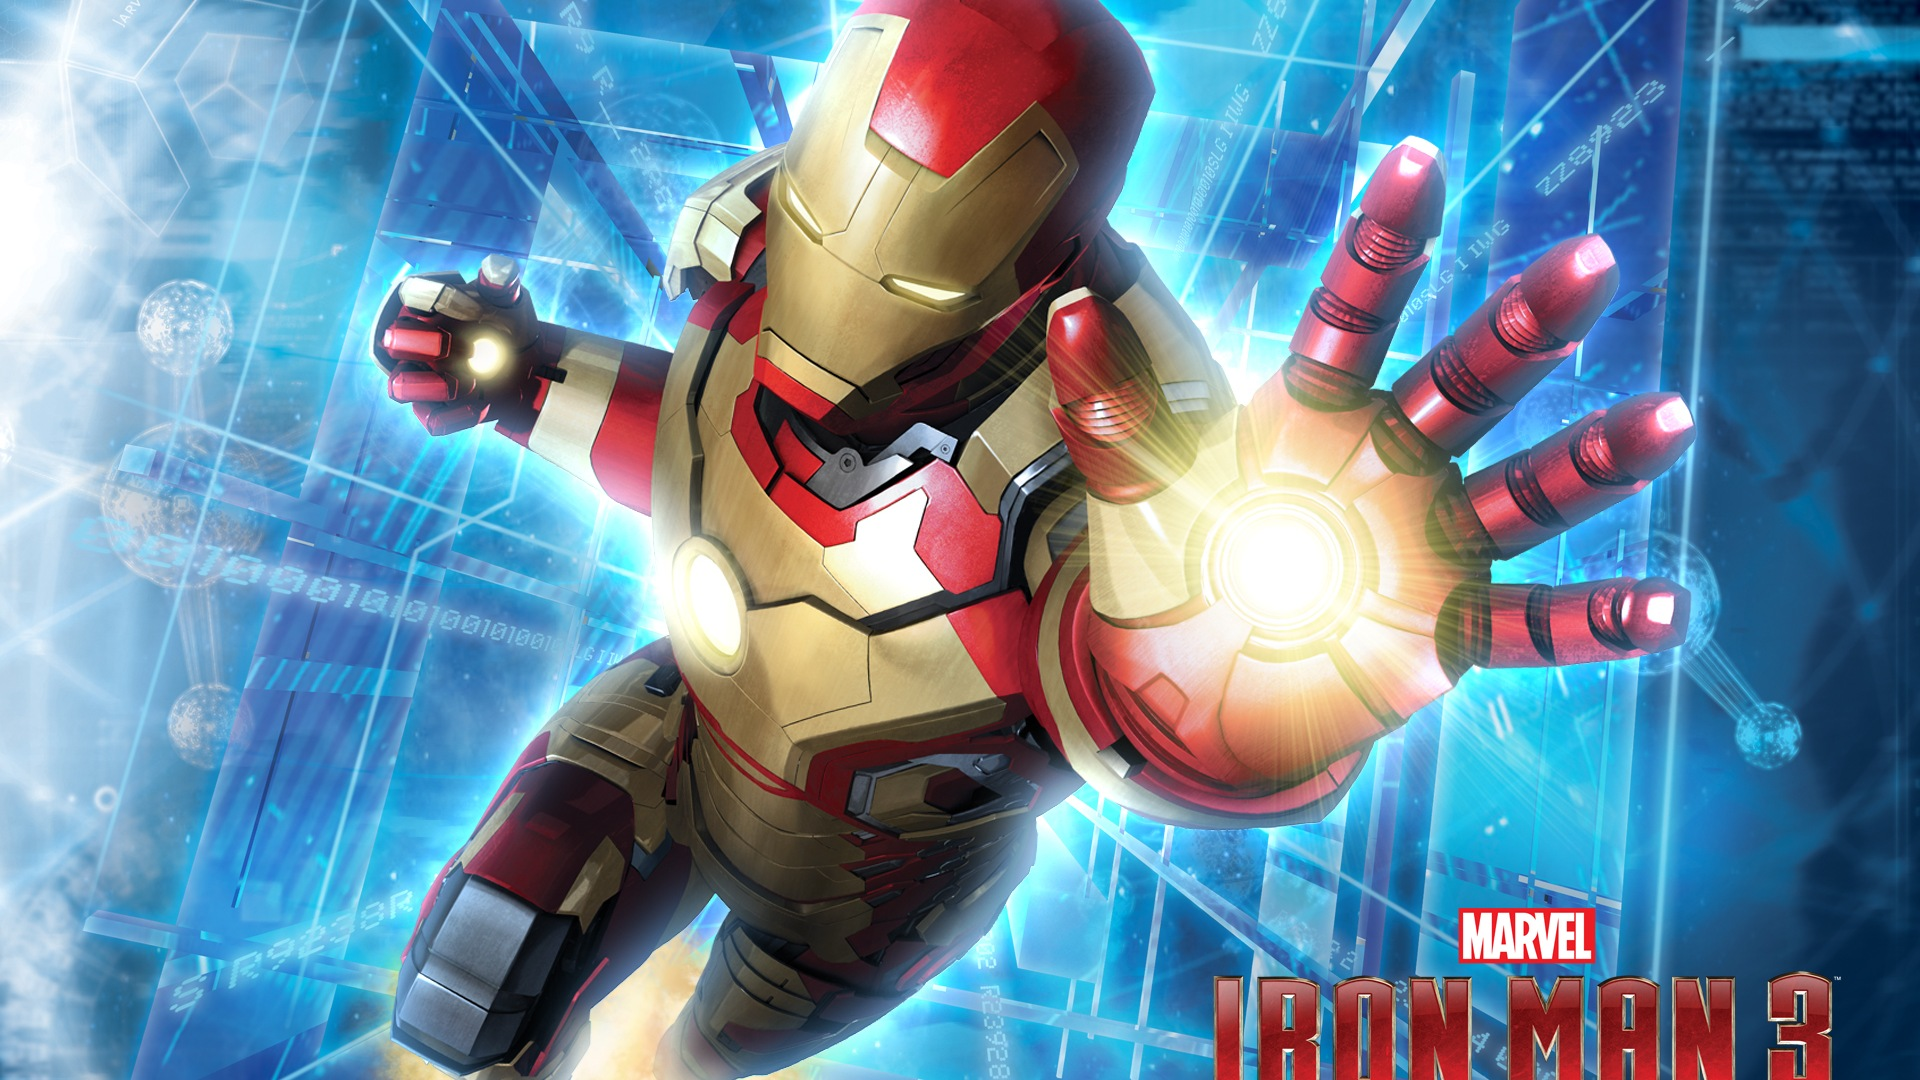 2013 Iron Man 3 newest HD wallpapers #9 - 1920x1080